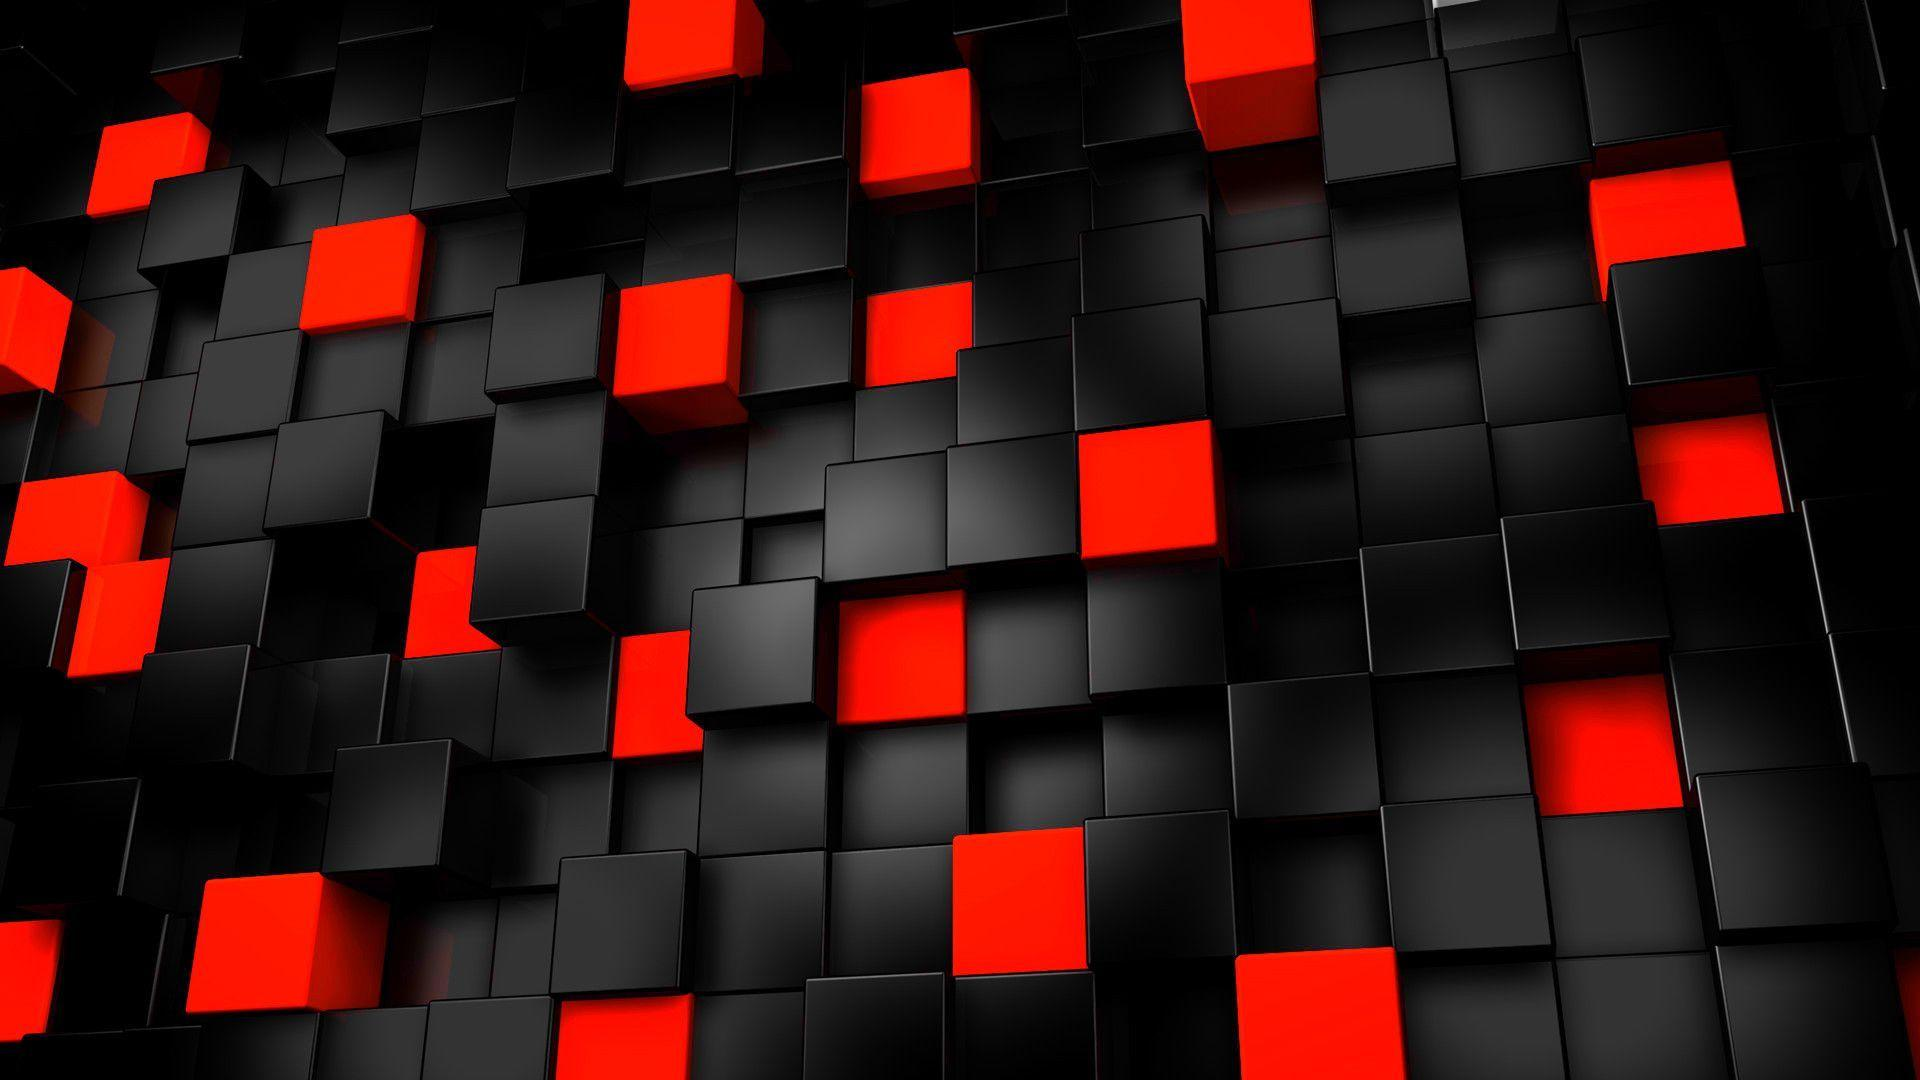 Abstract Black And Red Cubes Wallpapers, Fre Hd Wallpapers